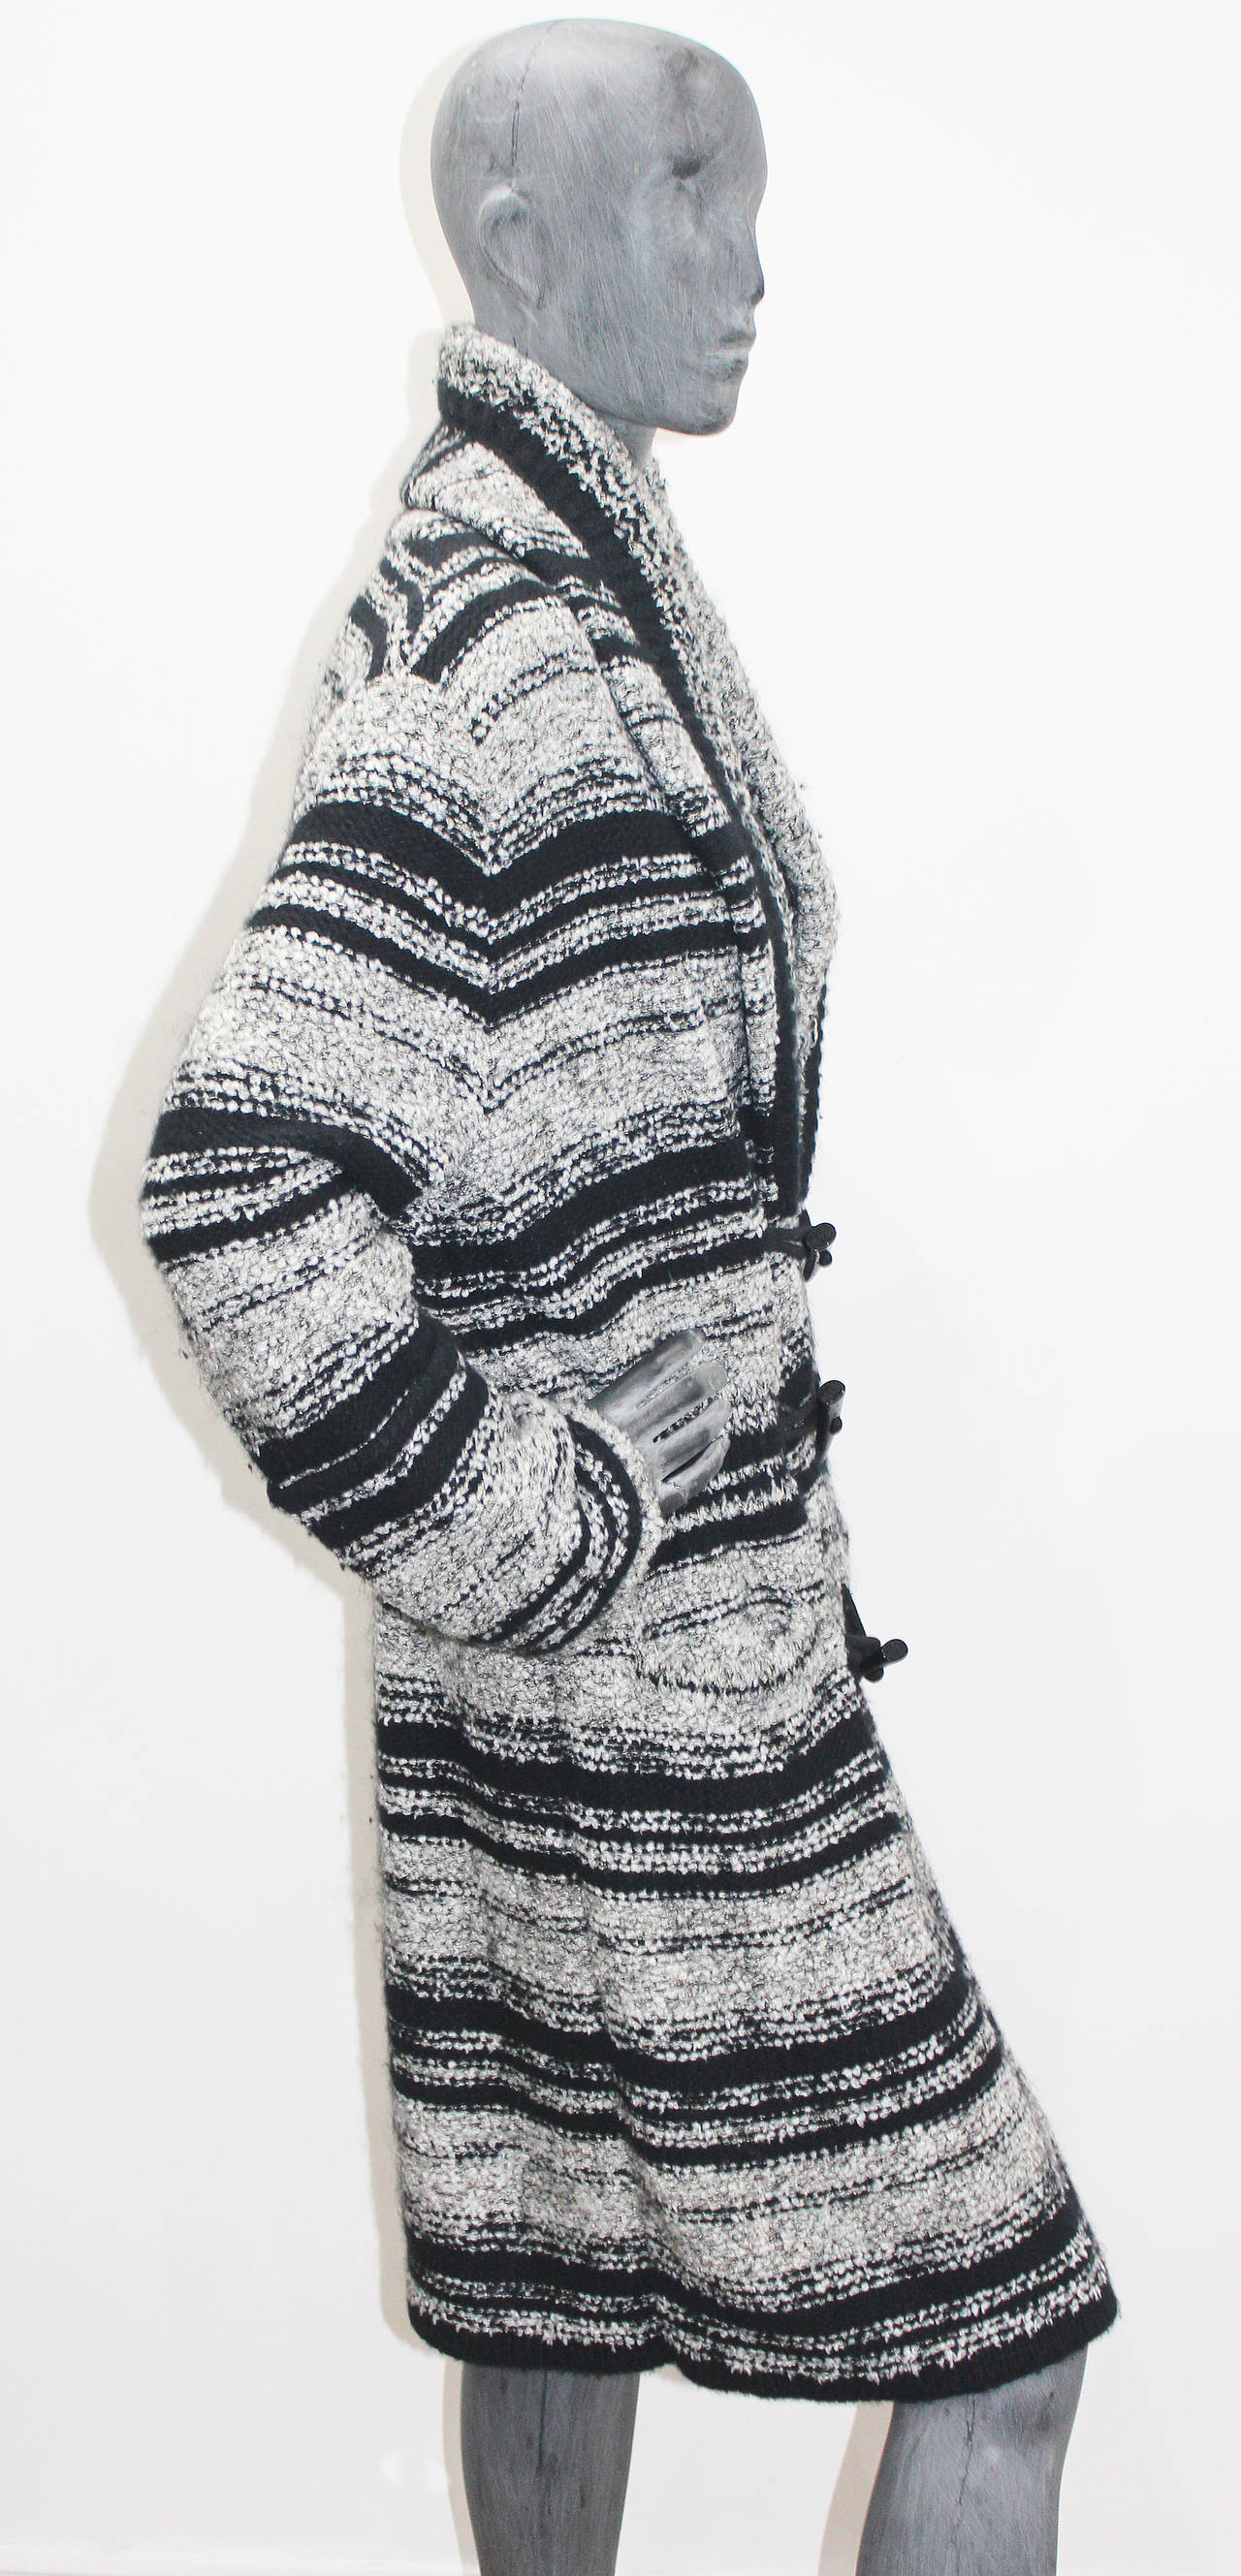 Chanel Oversized Knitted Tweed Cardigan Coat c. 2006 3